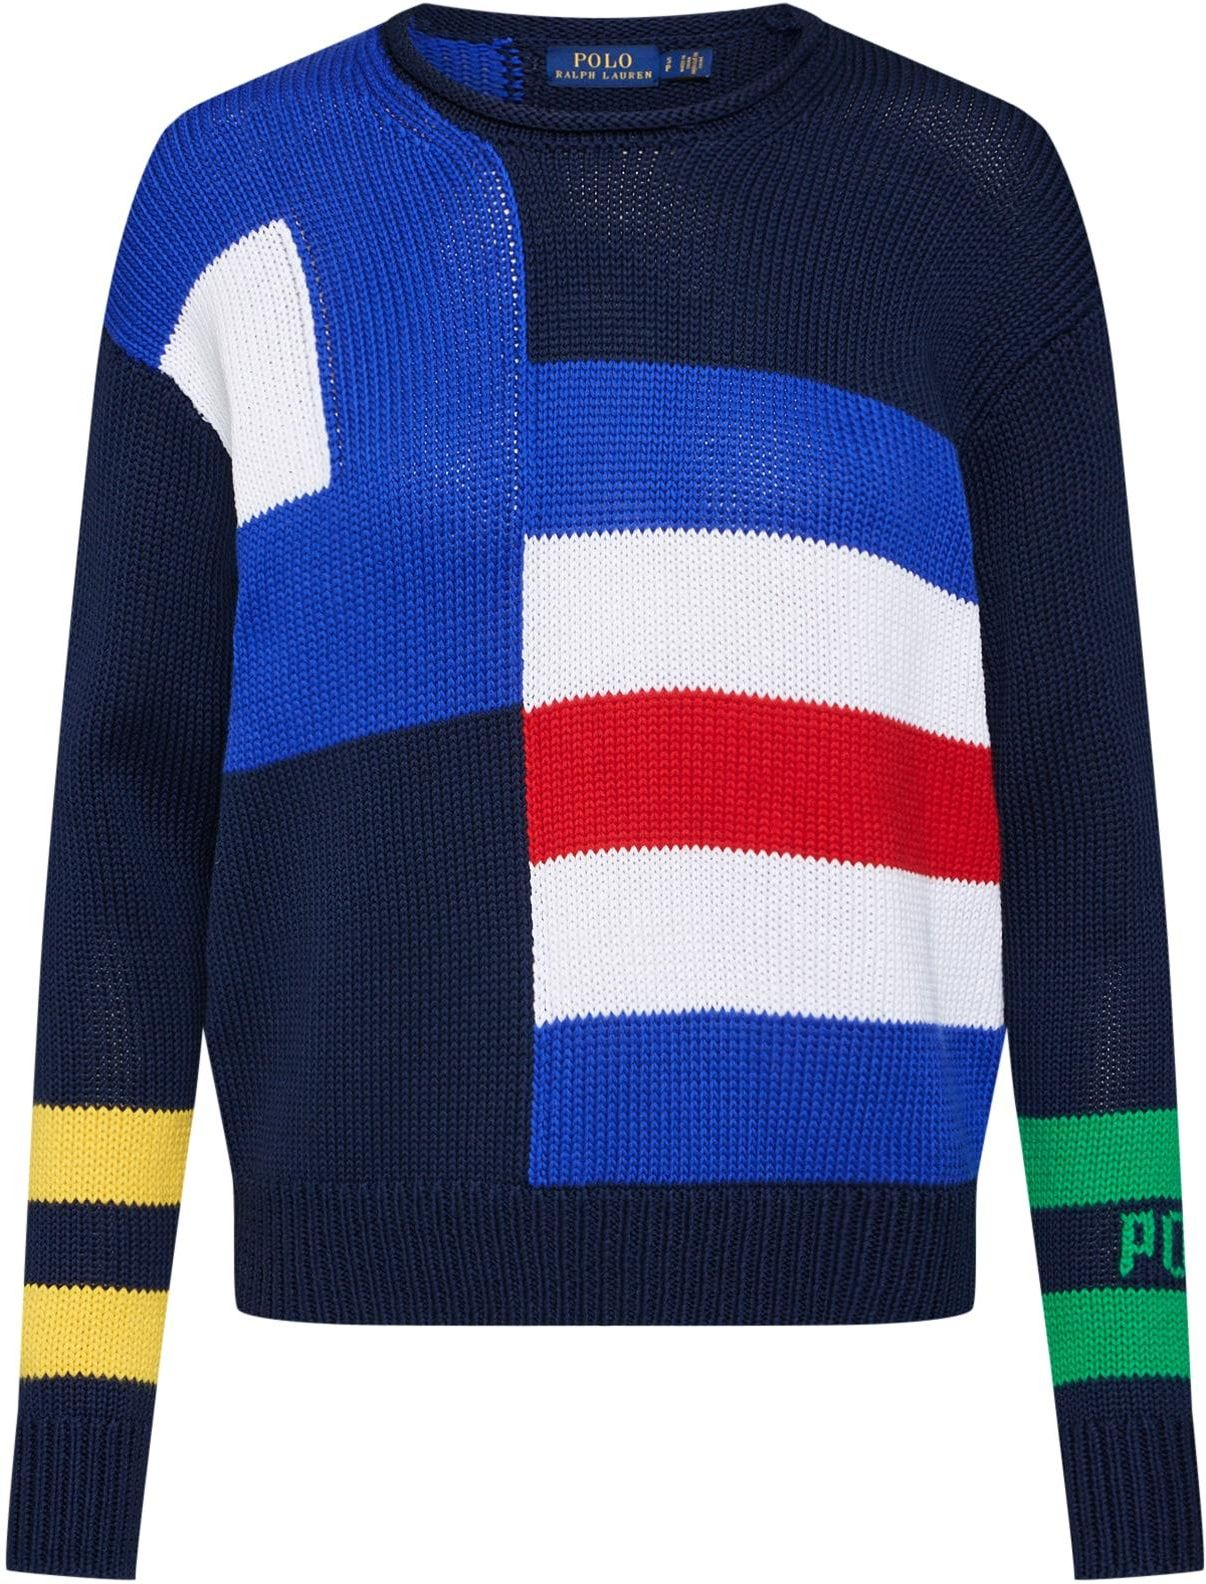 69ee00f18 POLO RALPH LAUREN Sweter - Ceny i opinie - Ceneo.pl